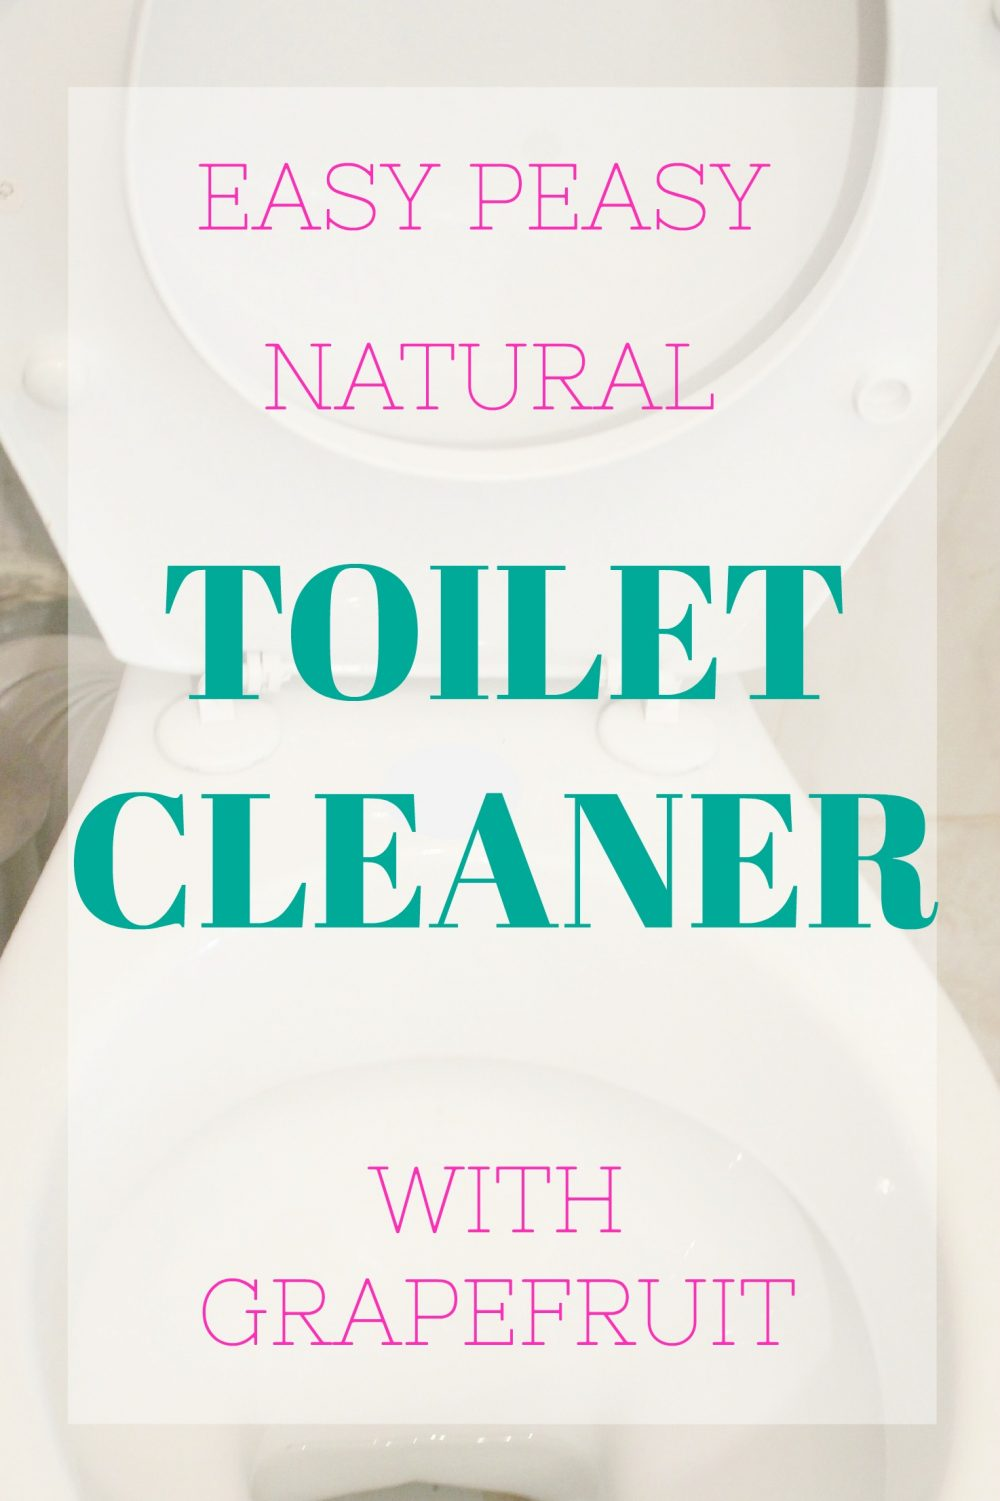 Clean your toilet with this natural toilet cleaner without bringing toxic fumes into your home.